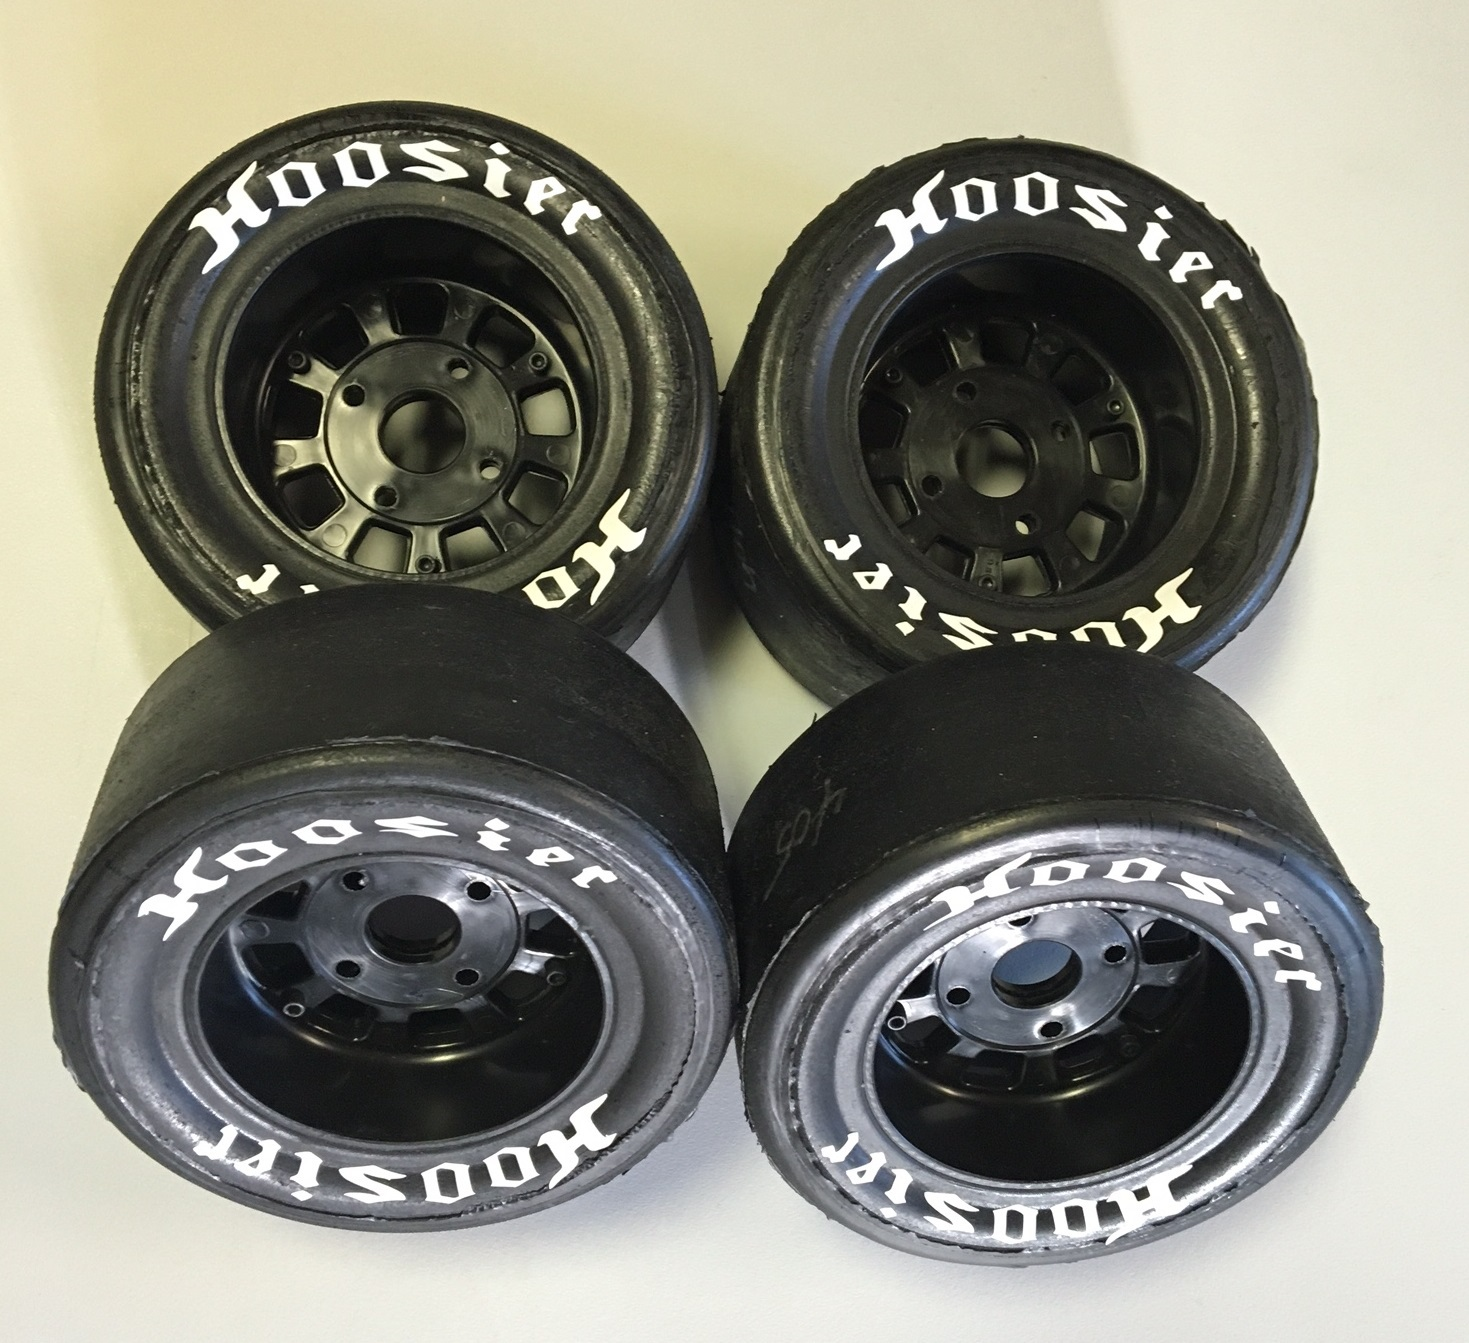 bishop racing tires, custom BRP wheels, Detroit Performance RC tires